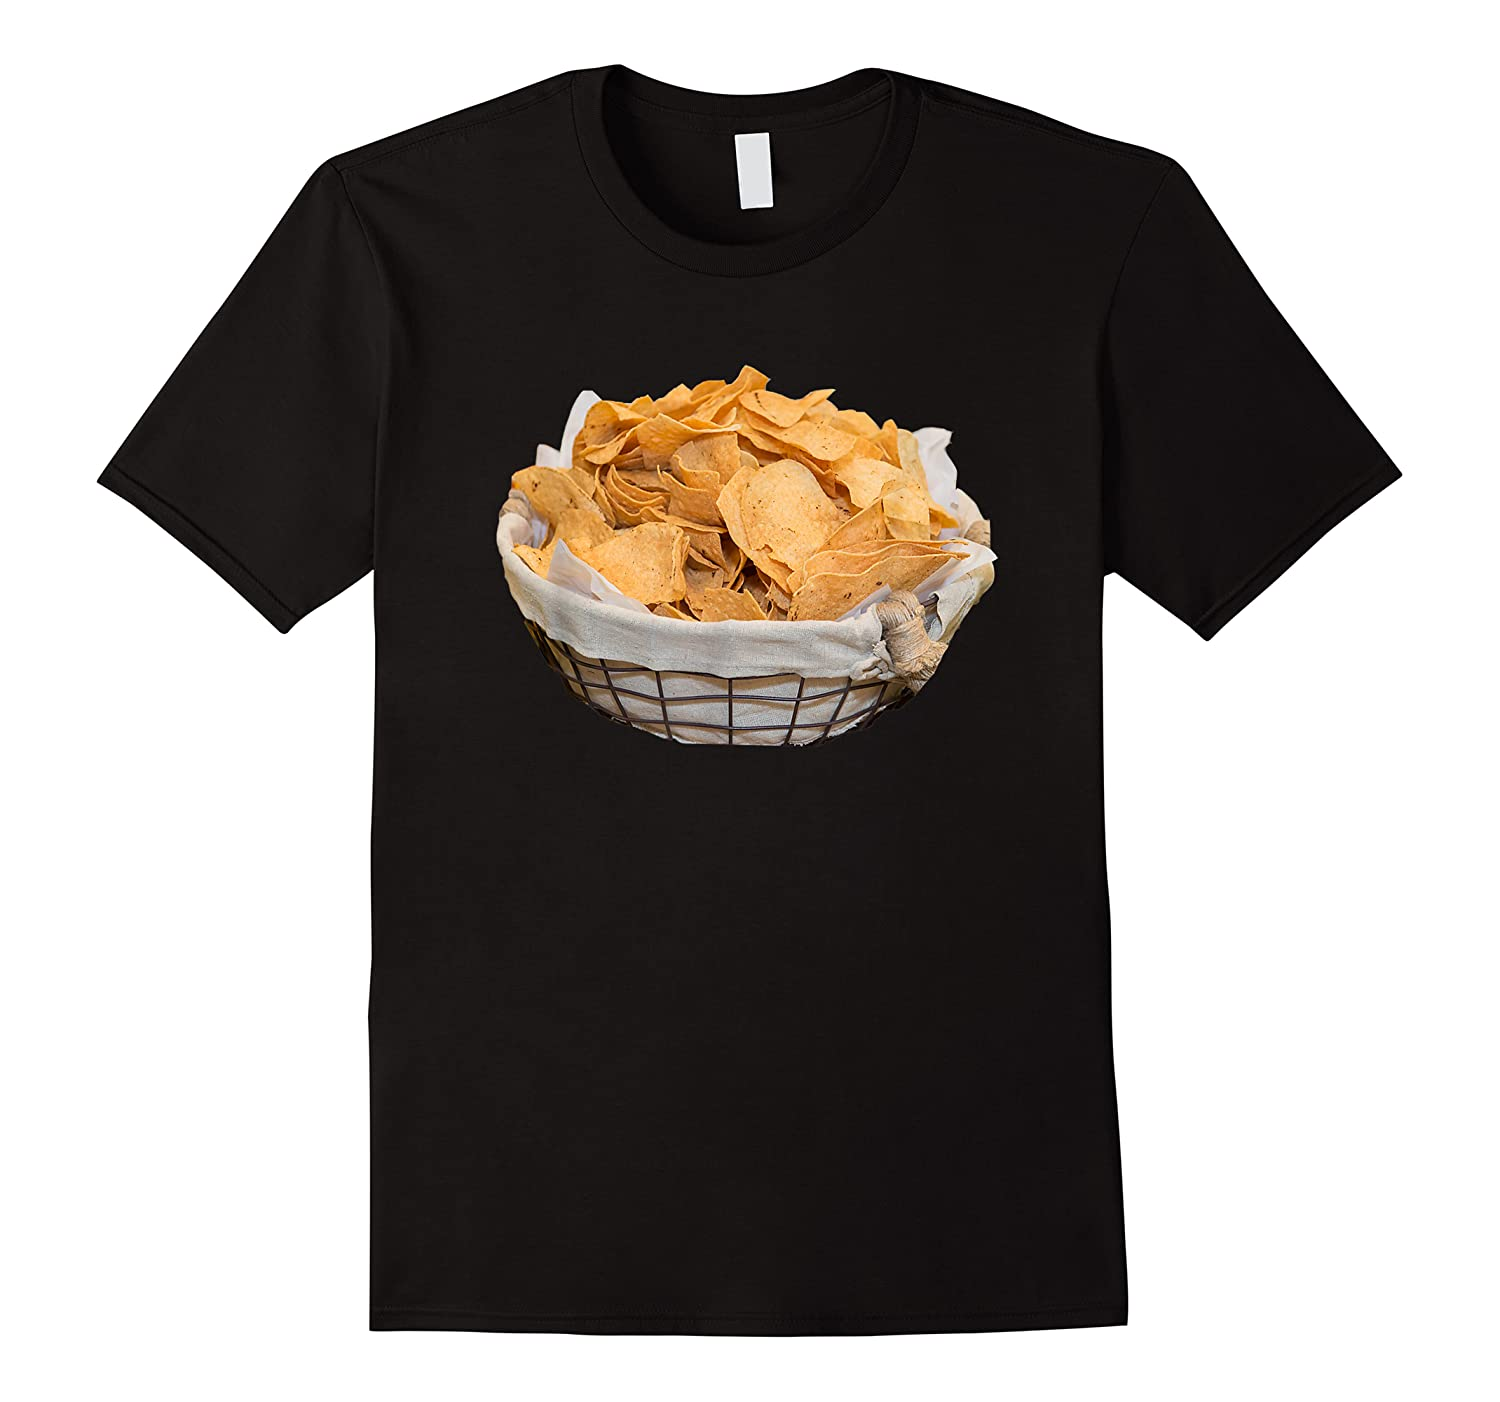 Tortilla Chips Costume Crunchy Corn Chips Snack Shirts